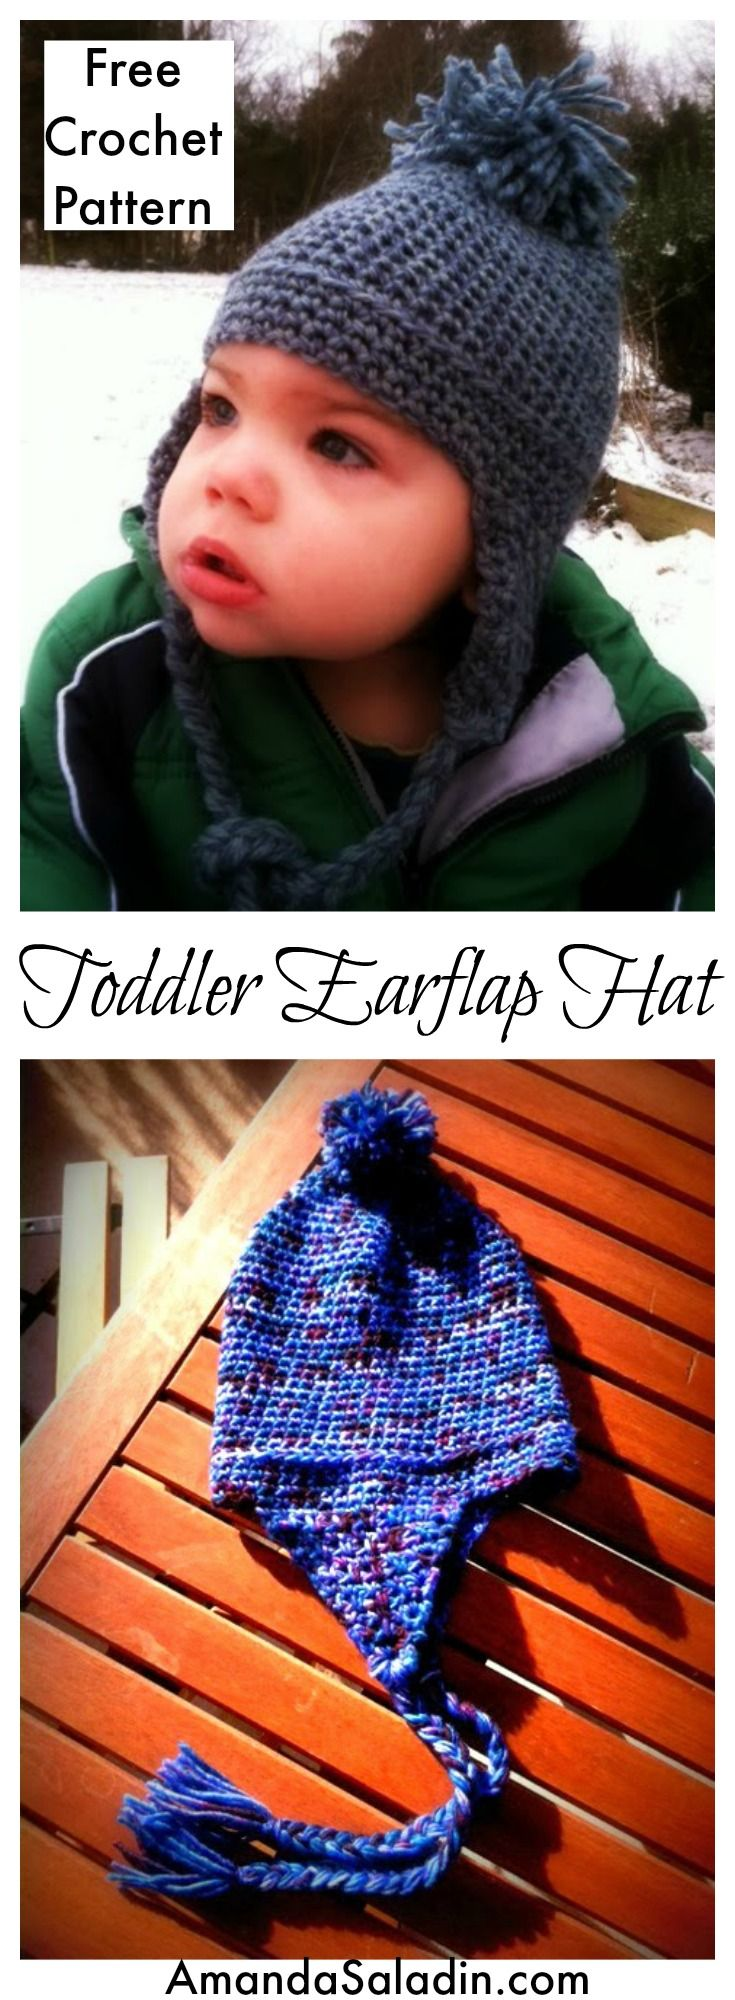 Best 25 crochet toddler hat ideas on pinterest baby beanie toddler earflap hat free crochet pattern bankloansurffo Choice Image